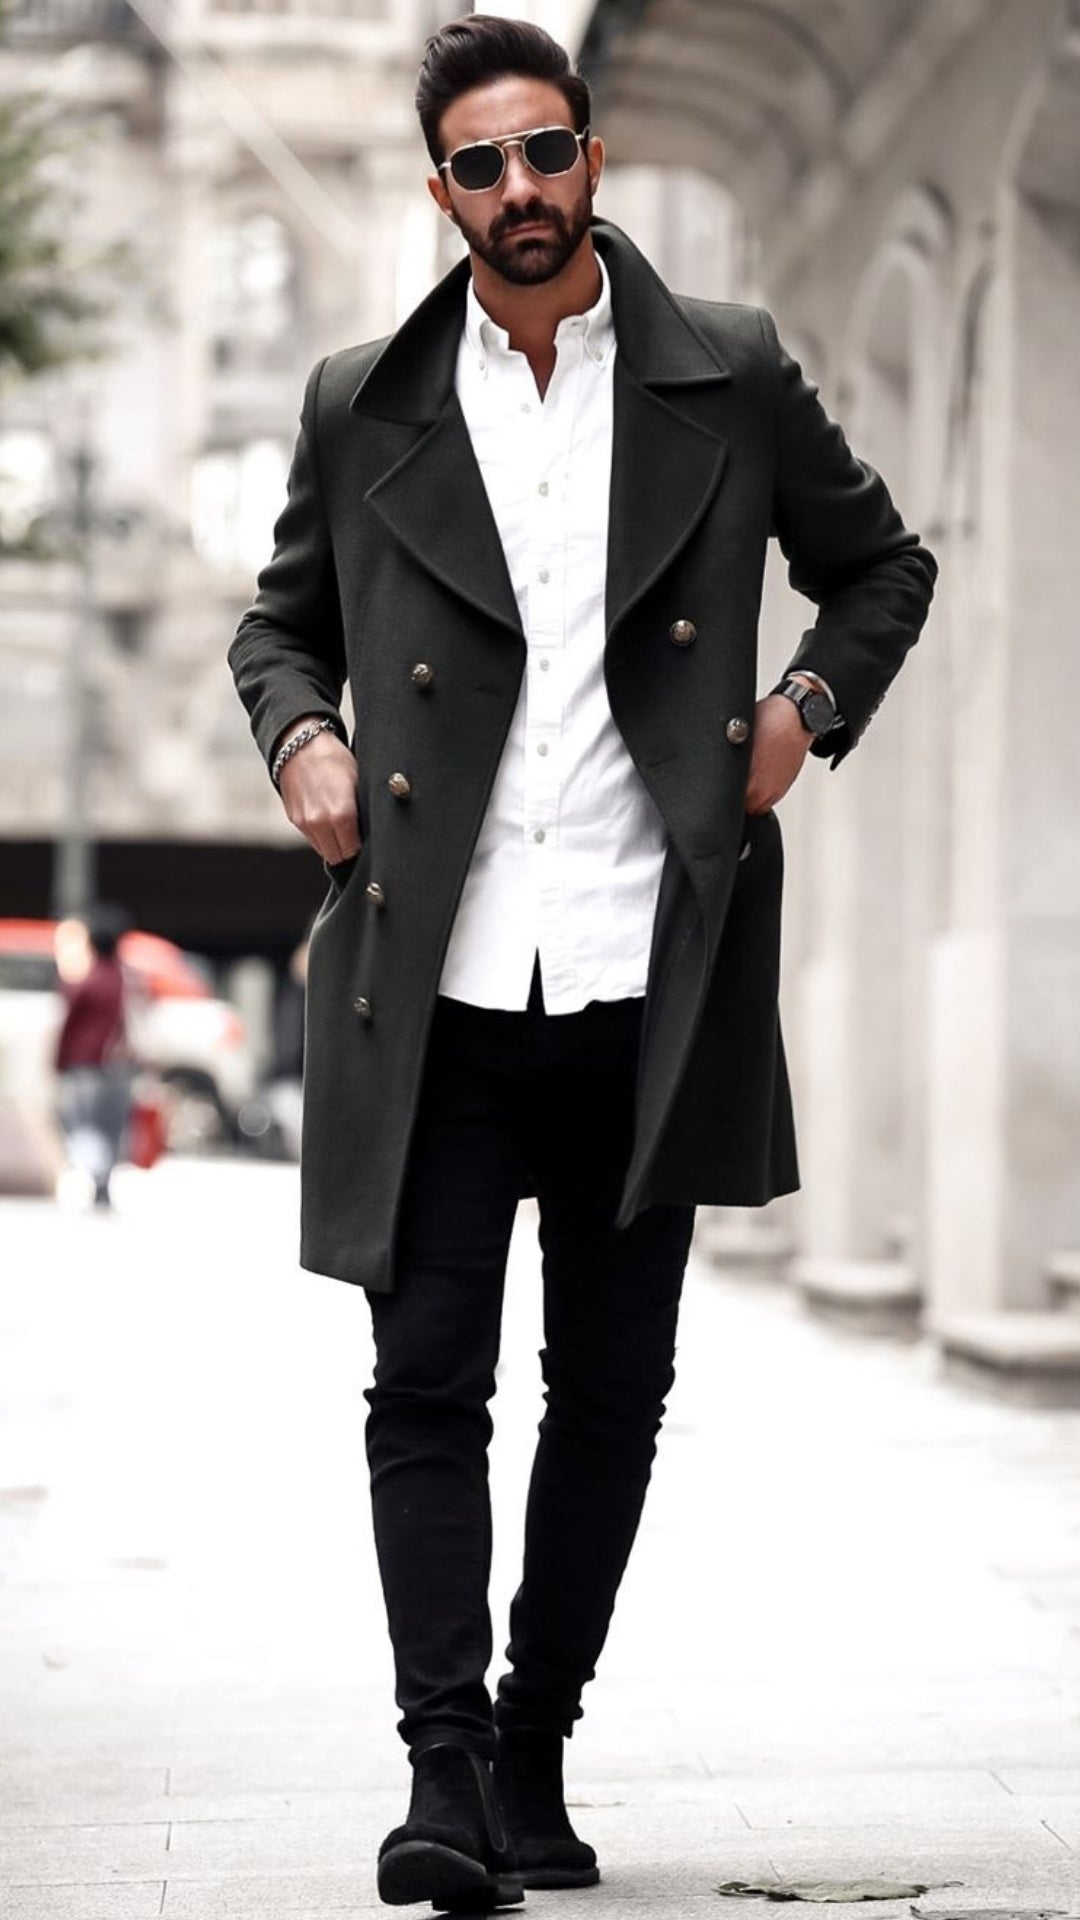 The Best 5 Winter Outfits With Long Coats #mensfashion #streetstyle #longcoats #outfits